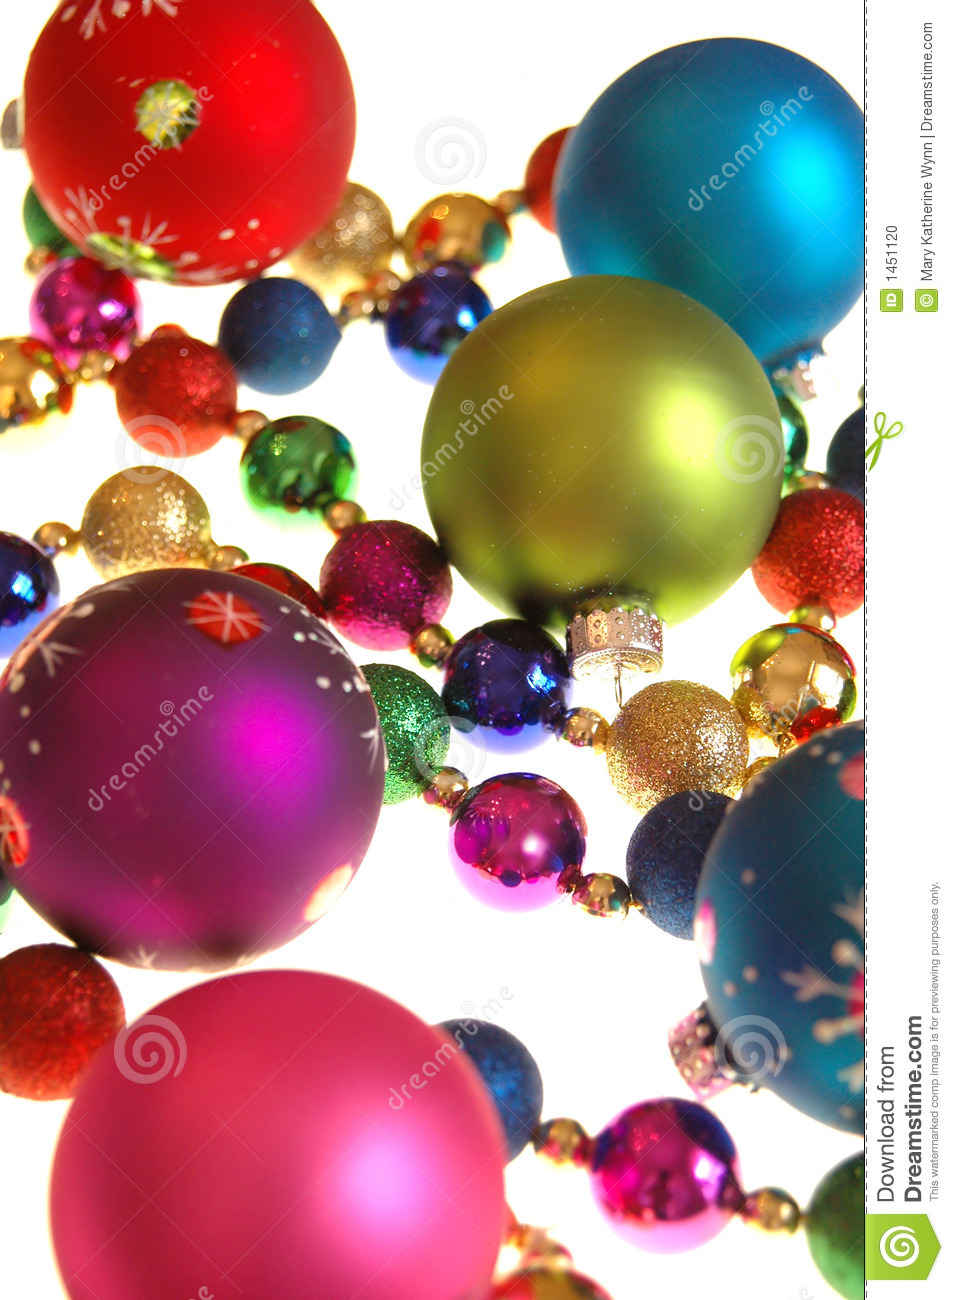 colorful christmas decorations - Colorful Christmas Decorations